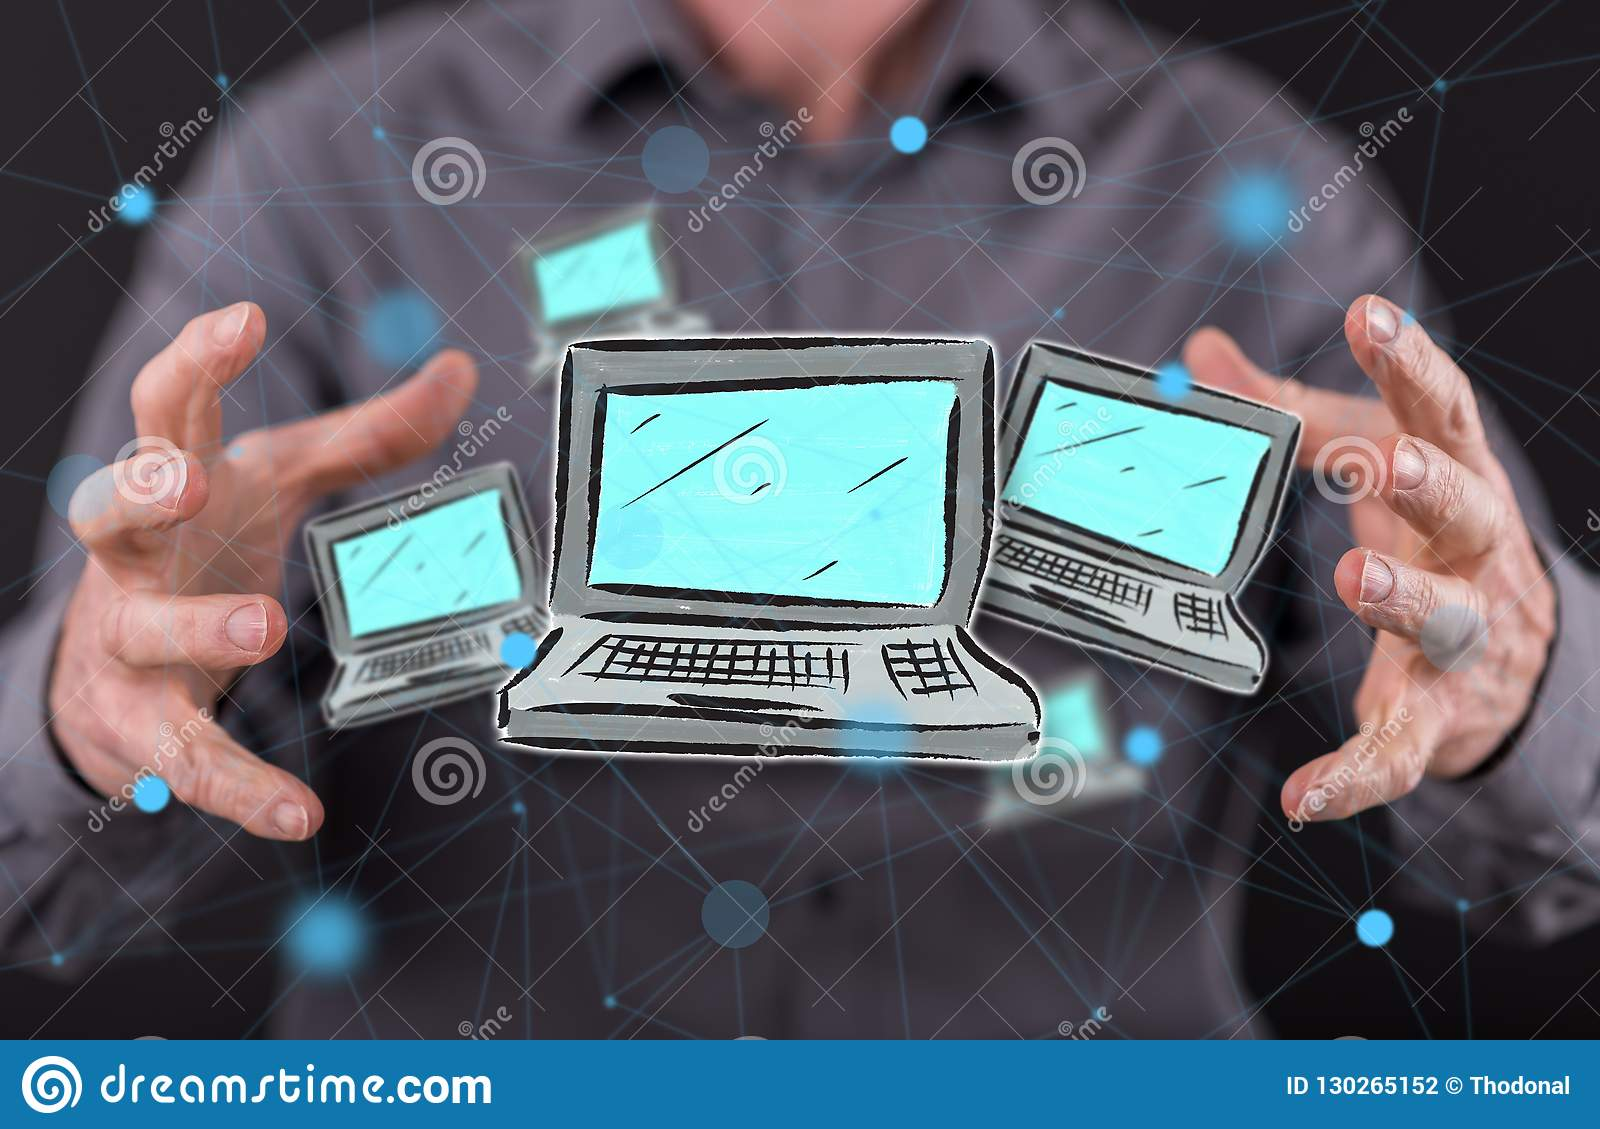 Concept of computer